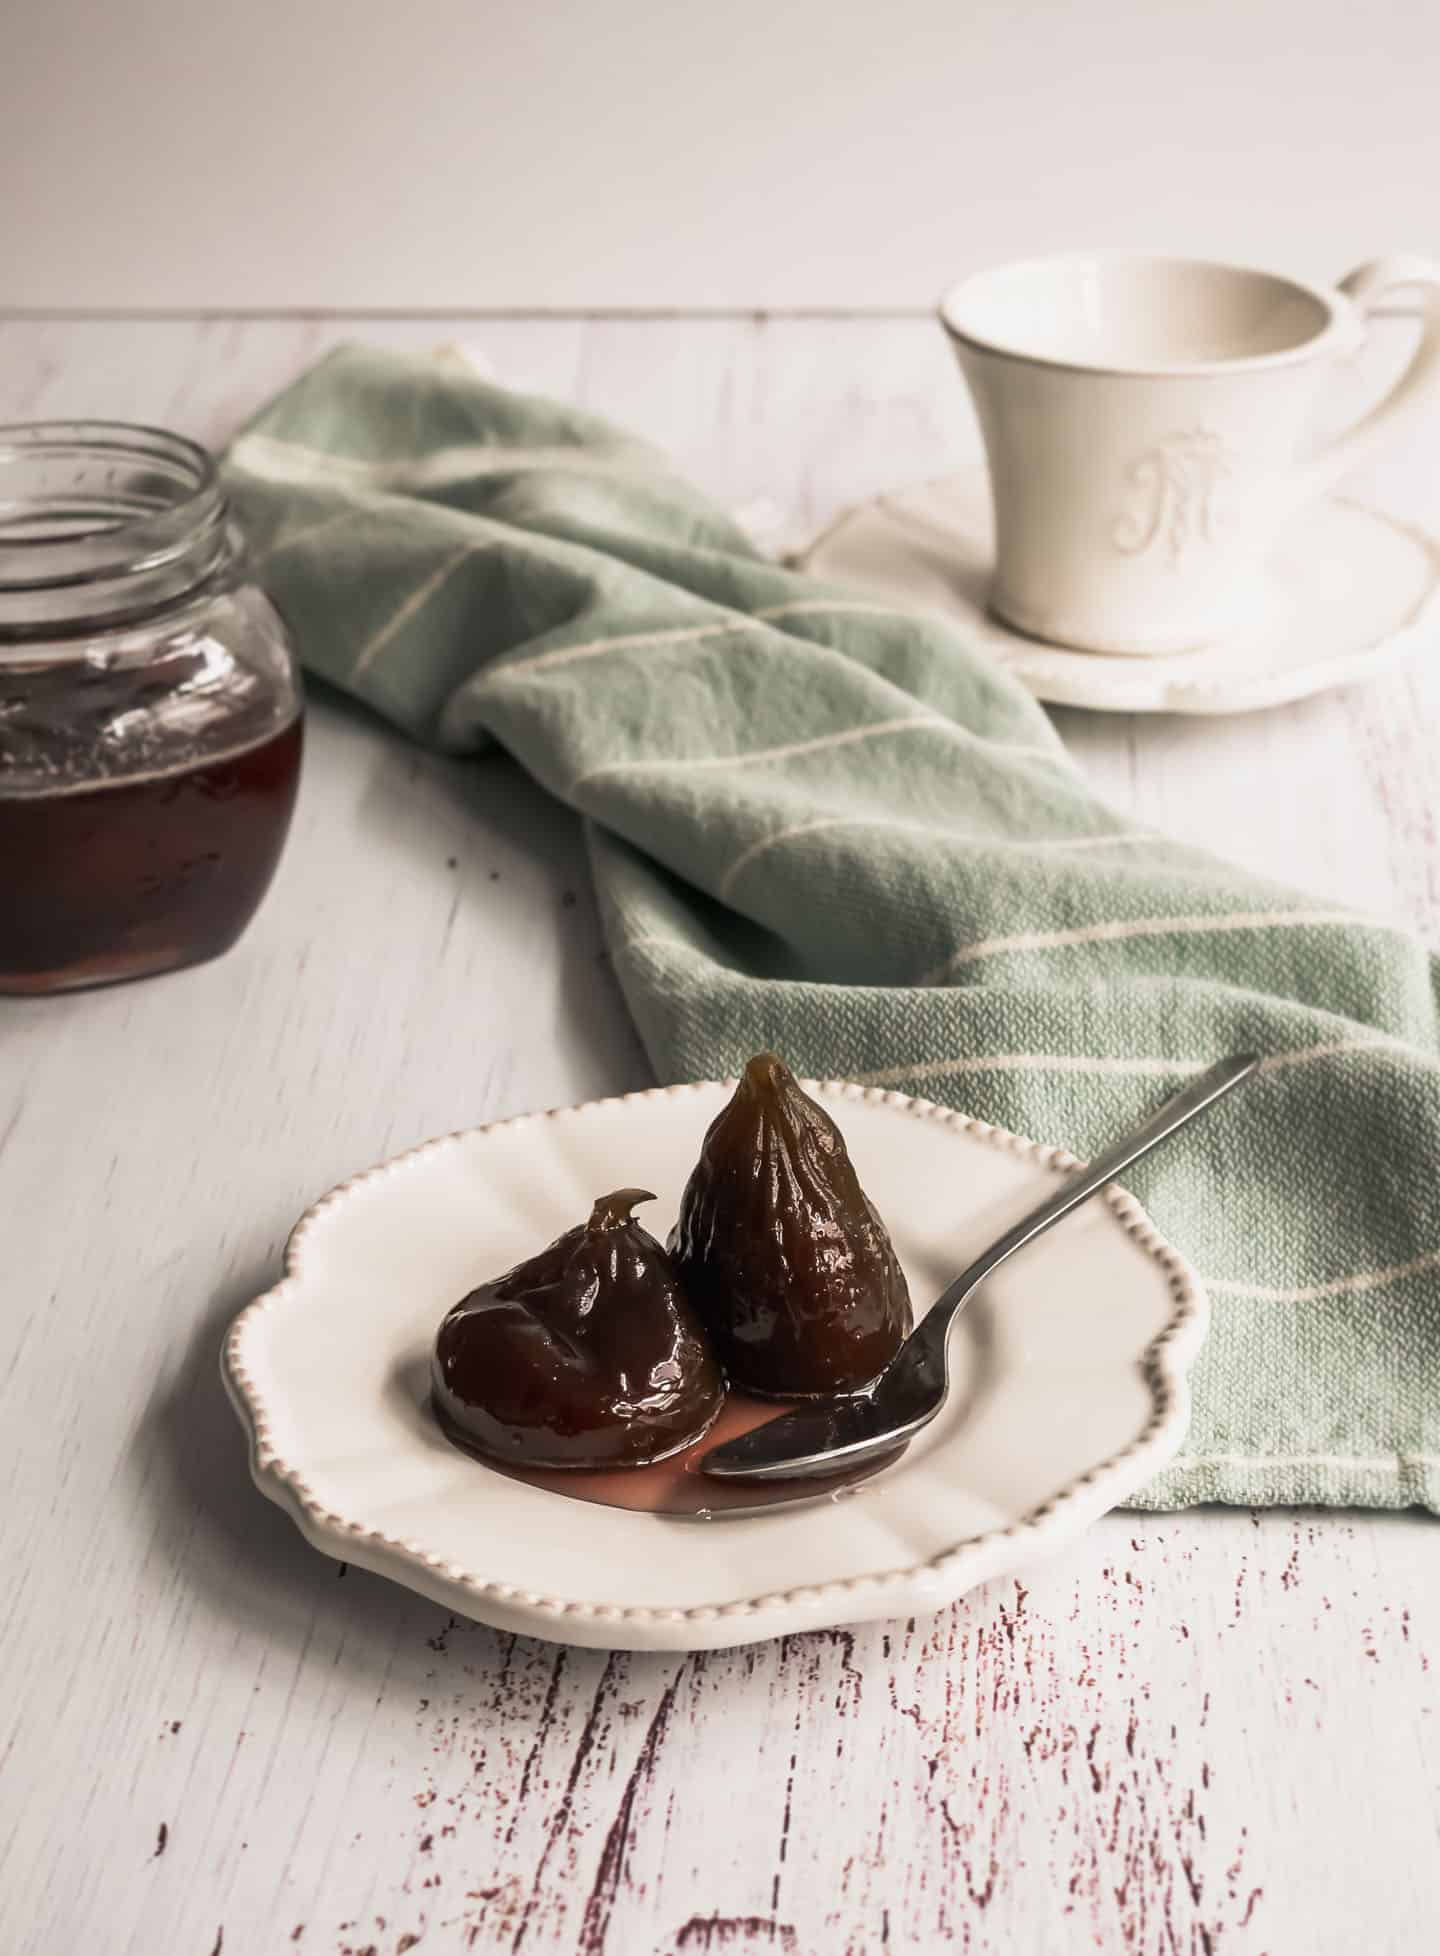 Figs in Syrup in front of a open jar with figs and a tea cup